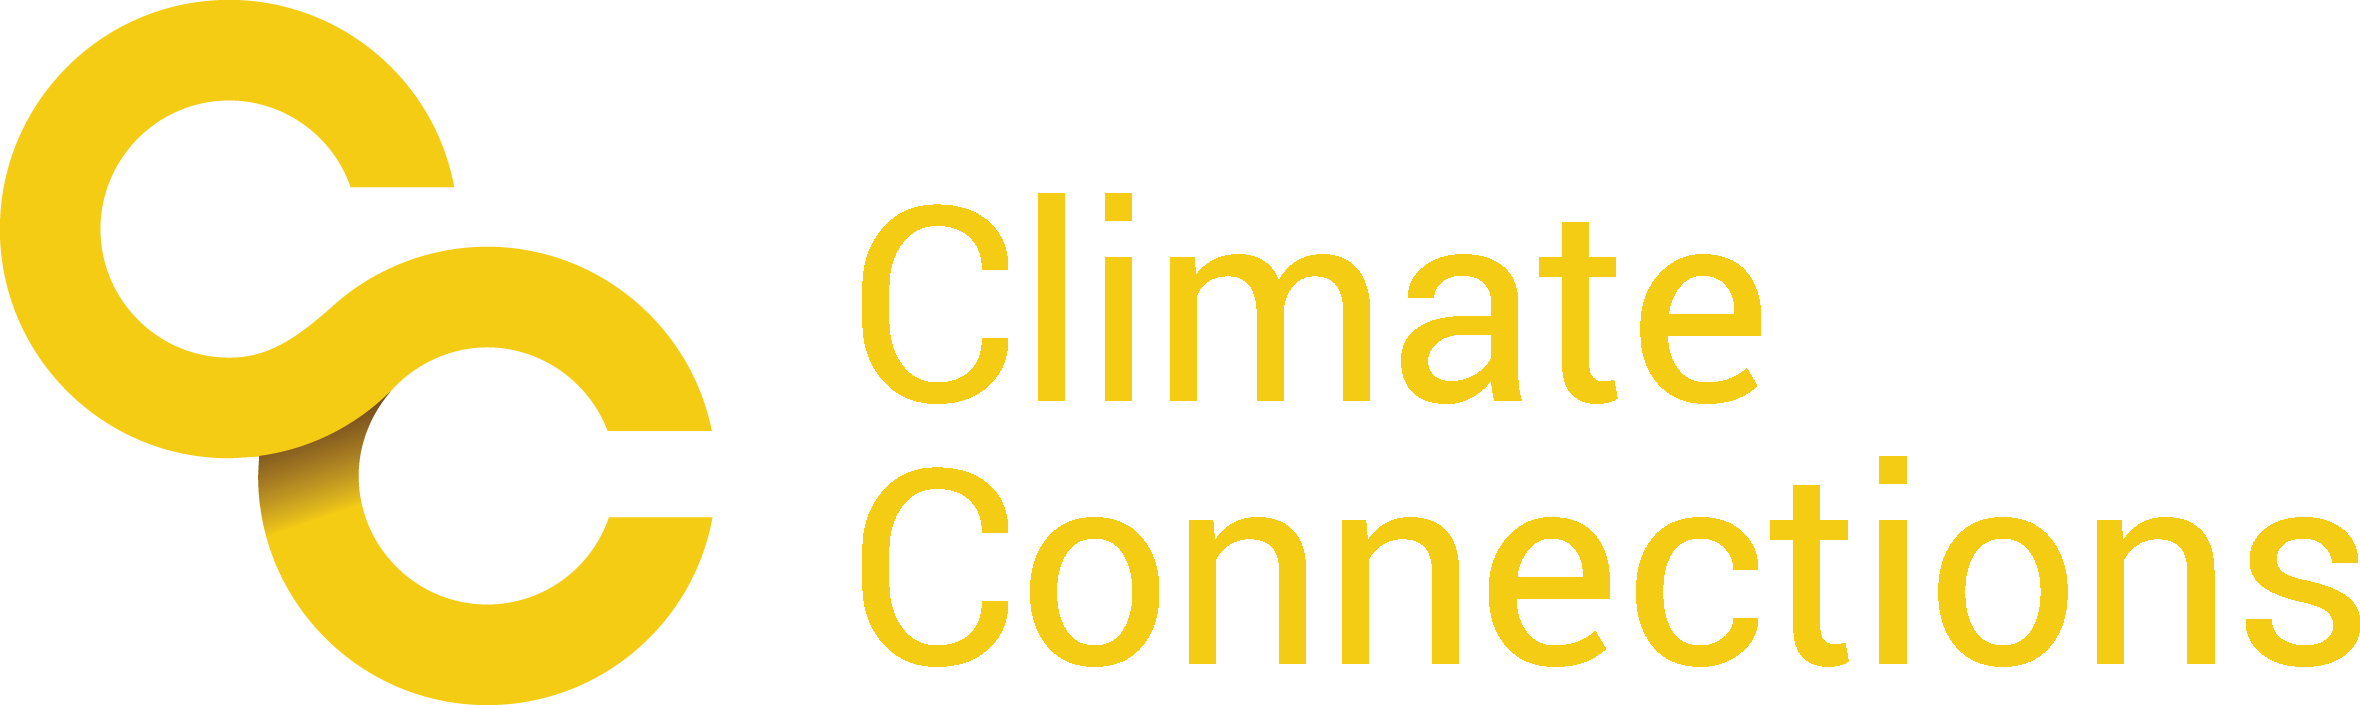 Yale Climate Connections